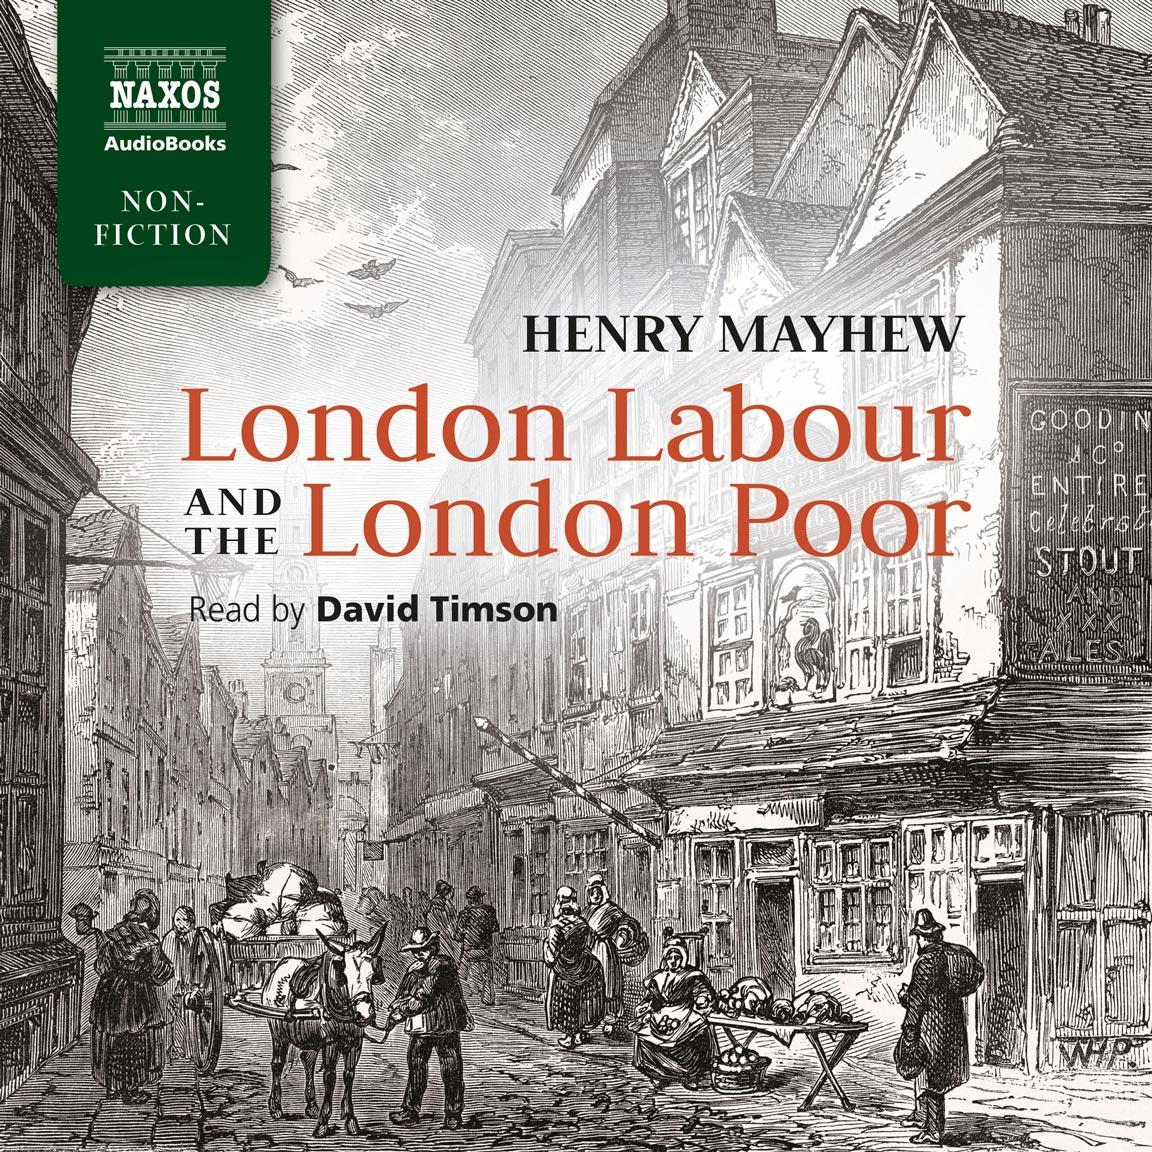 London Labour and the London Poor (unabridged)